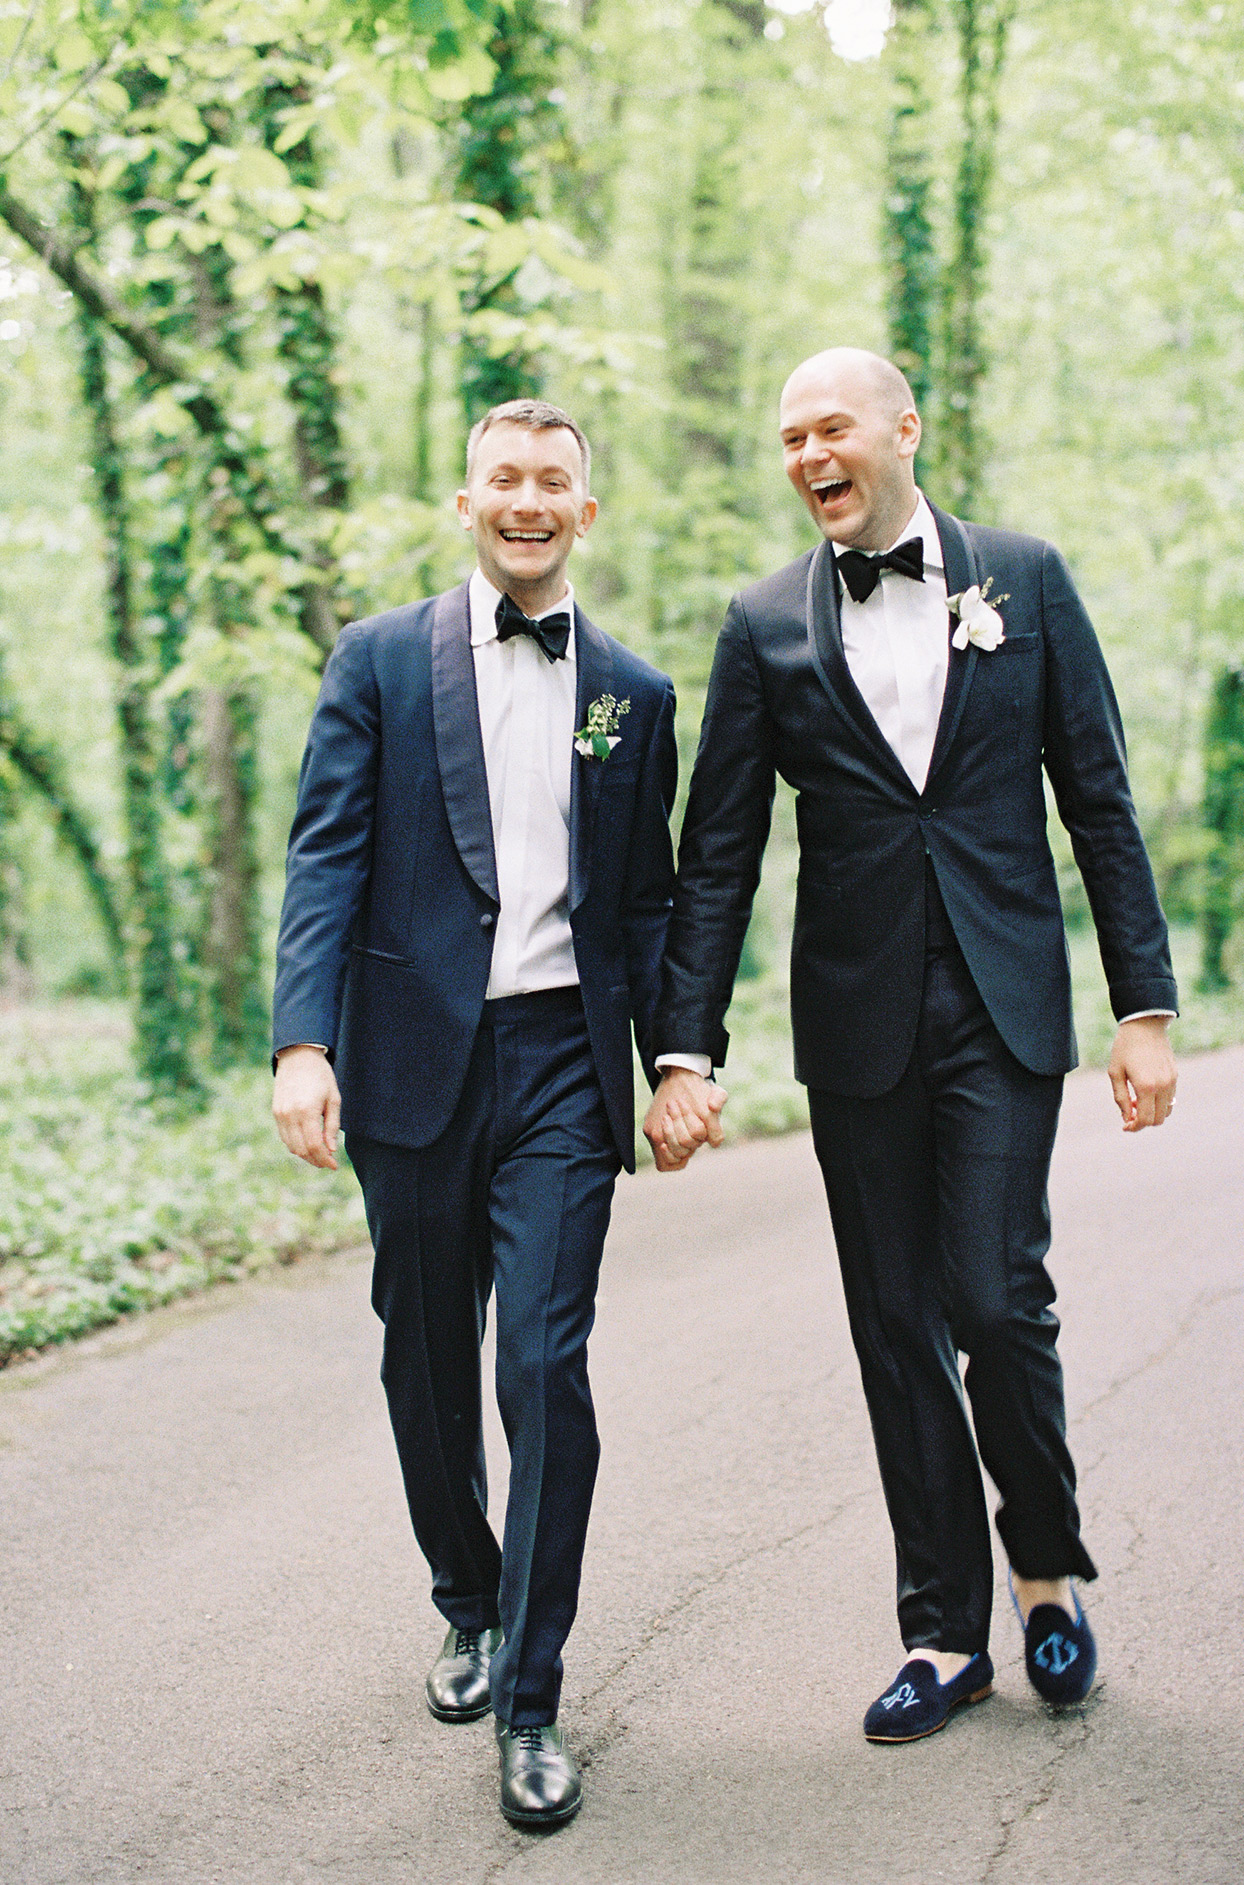 grooms holding hands walking through forest